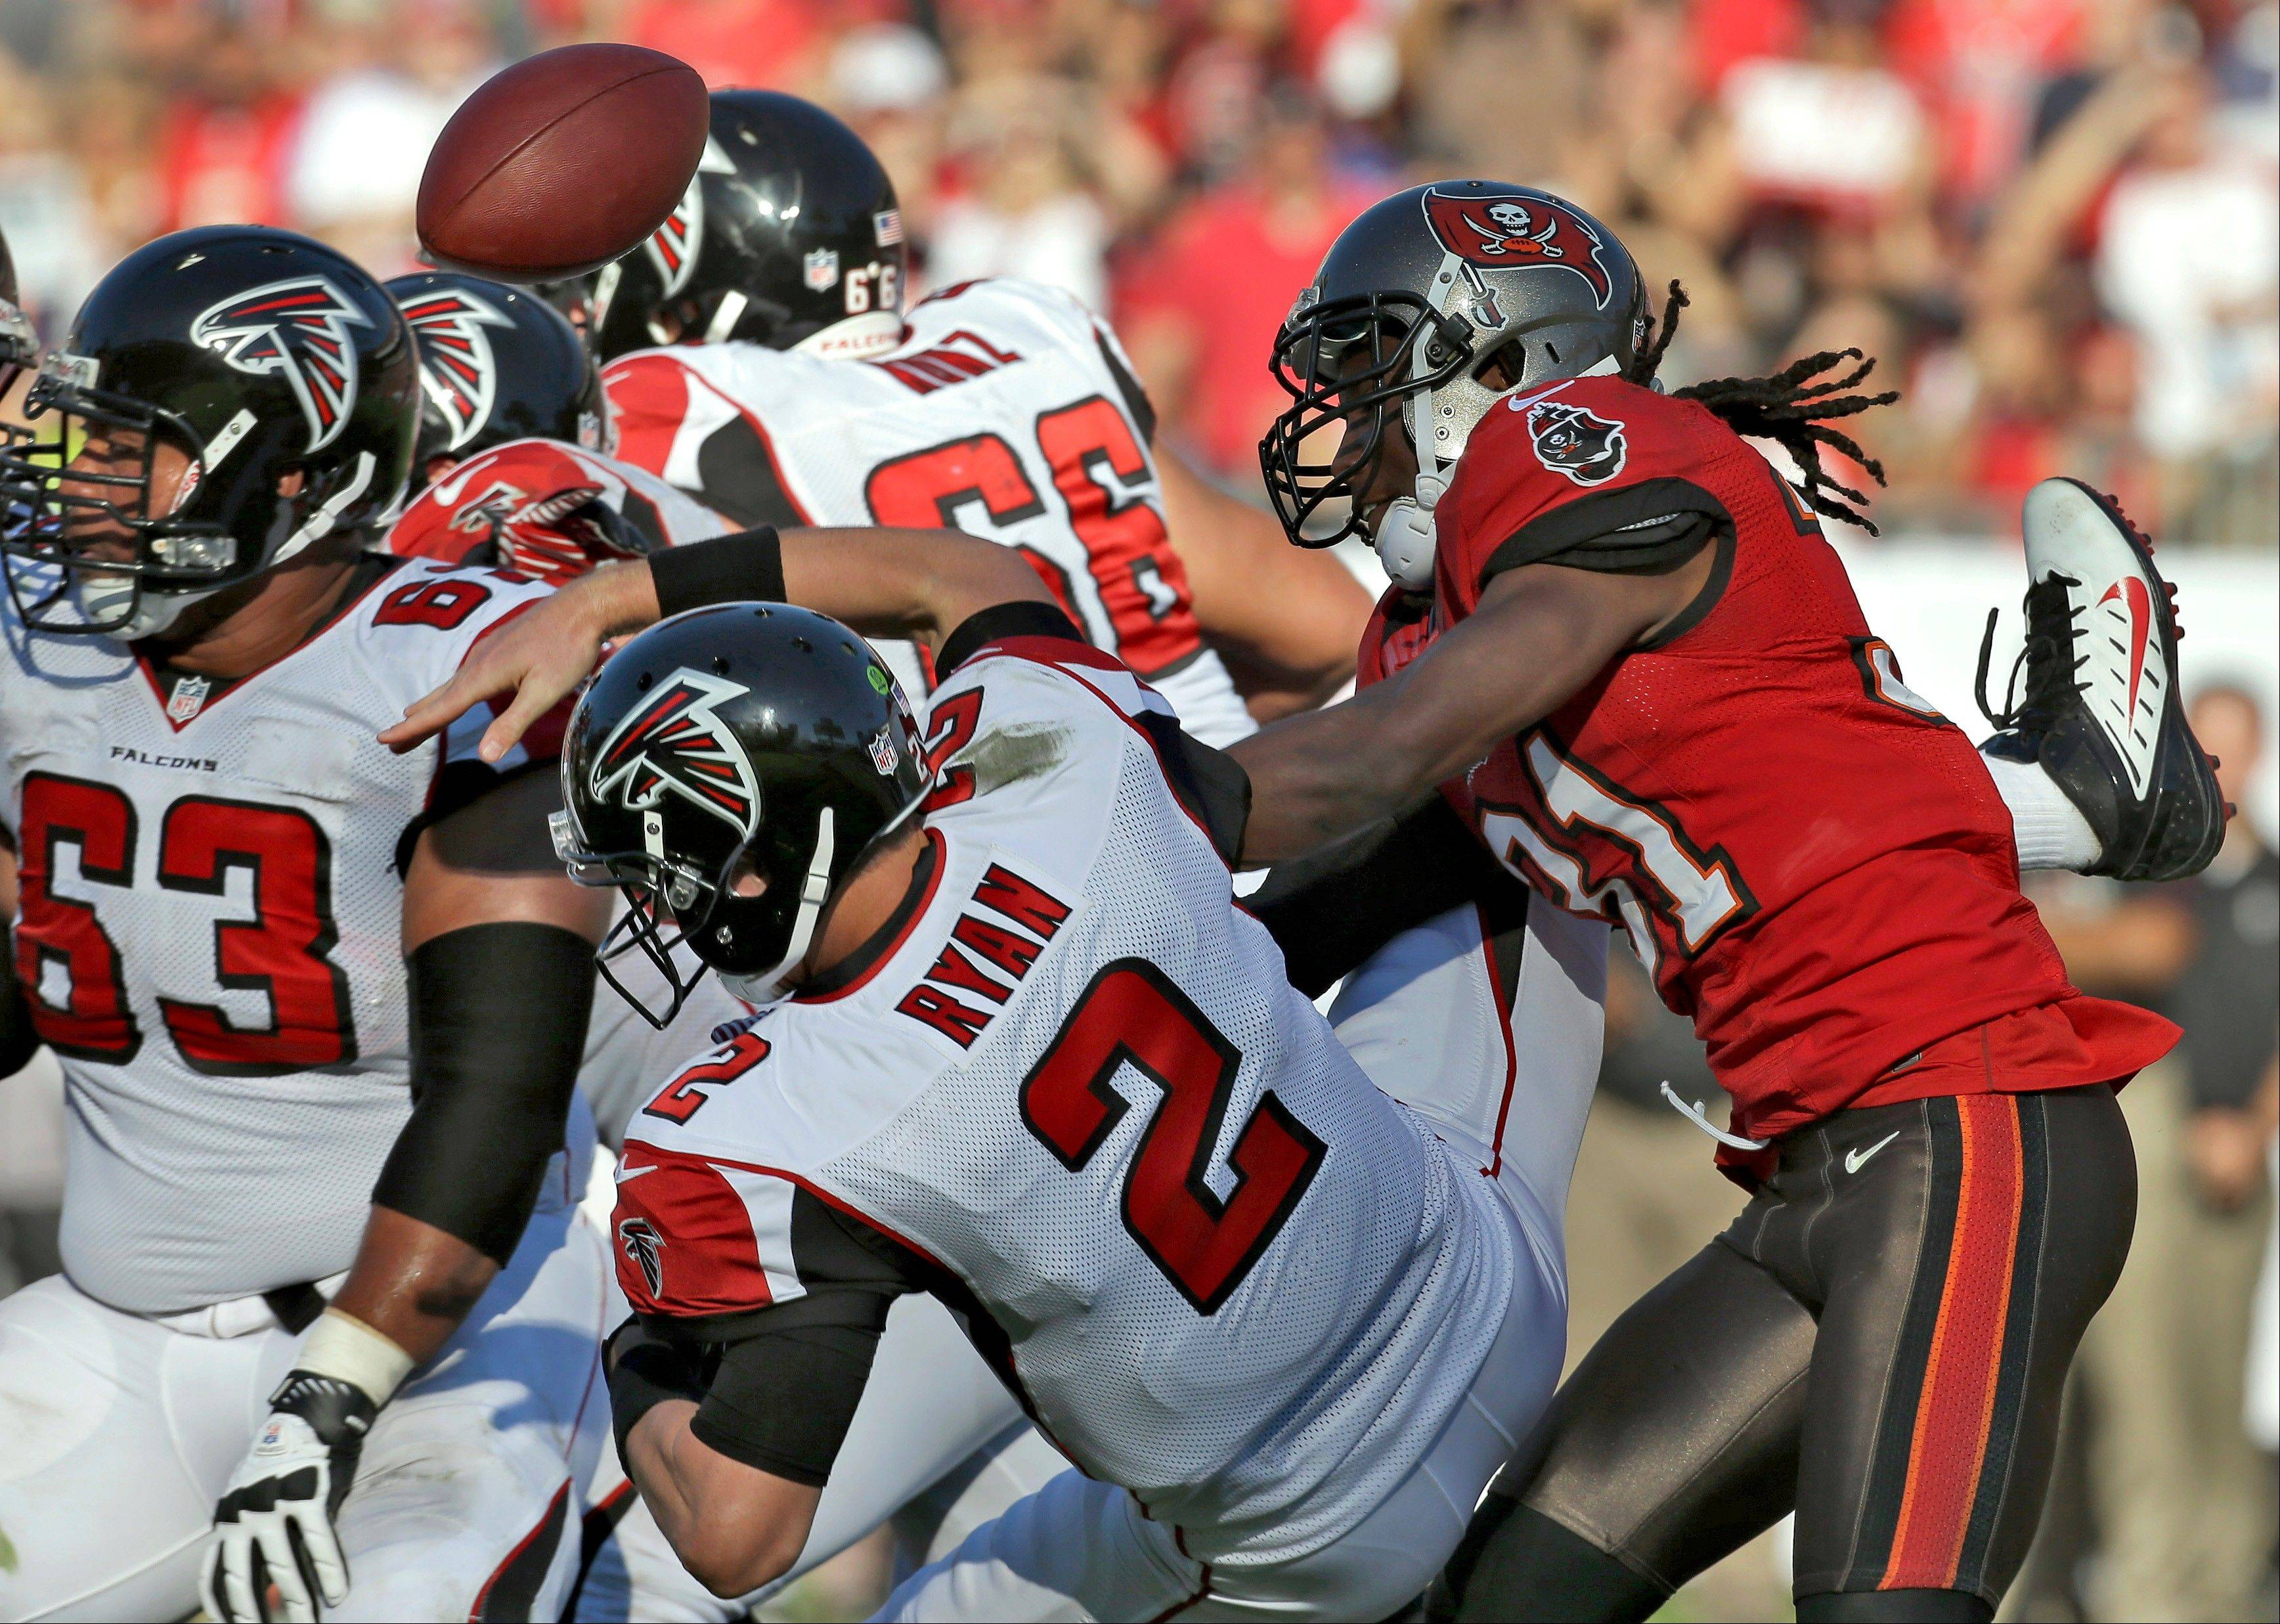 Tampa Bay Buccaneers cornerback E.J. Biggers hits Atlanta Falcons quarterback Matt Ryan, forcing a fumble during the fourth quarter of Sunday�s game in Tampa, Fla.